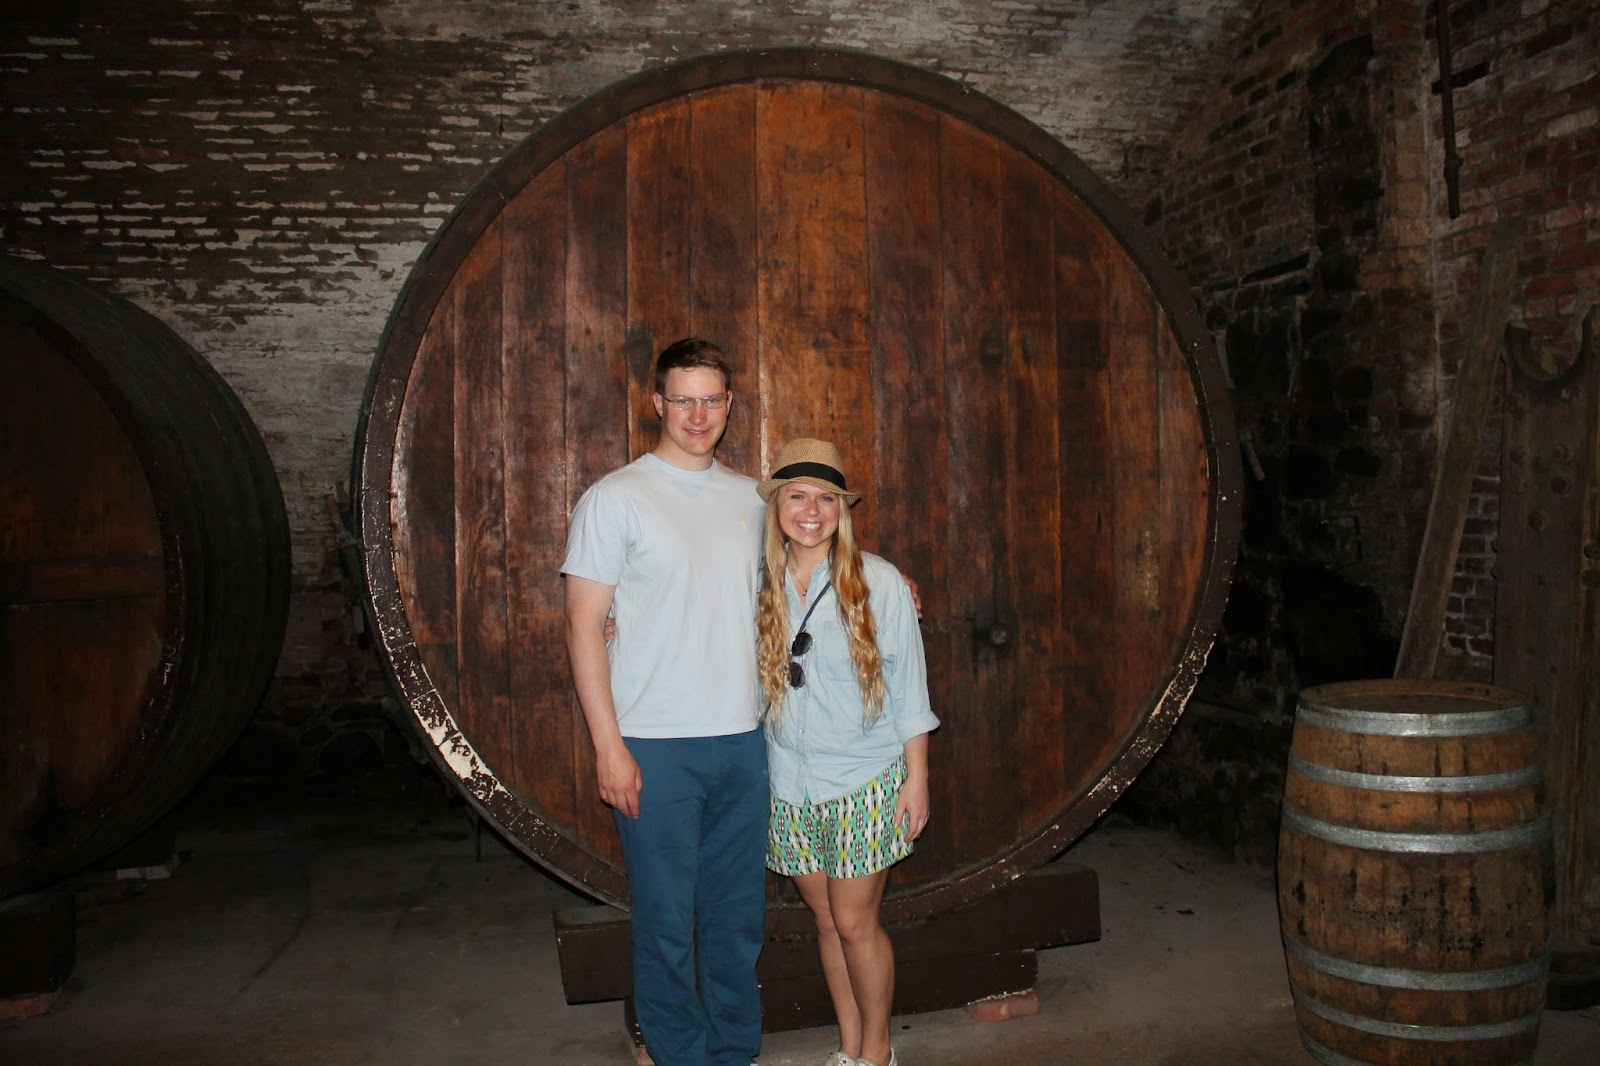 Winey children in front of a Brotherhood Winery cellar barrel